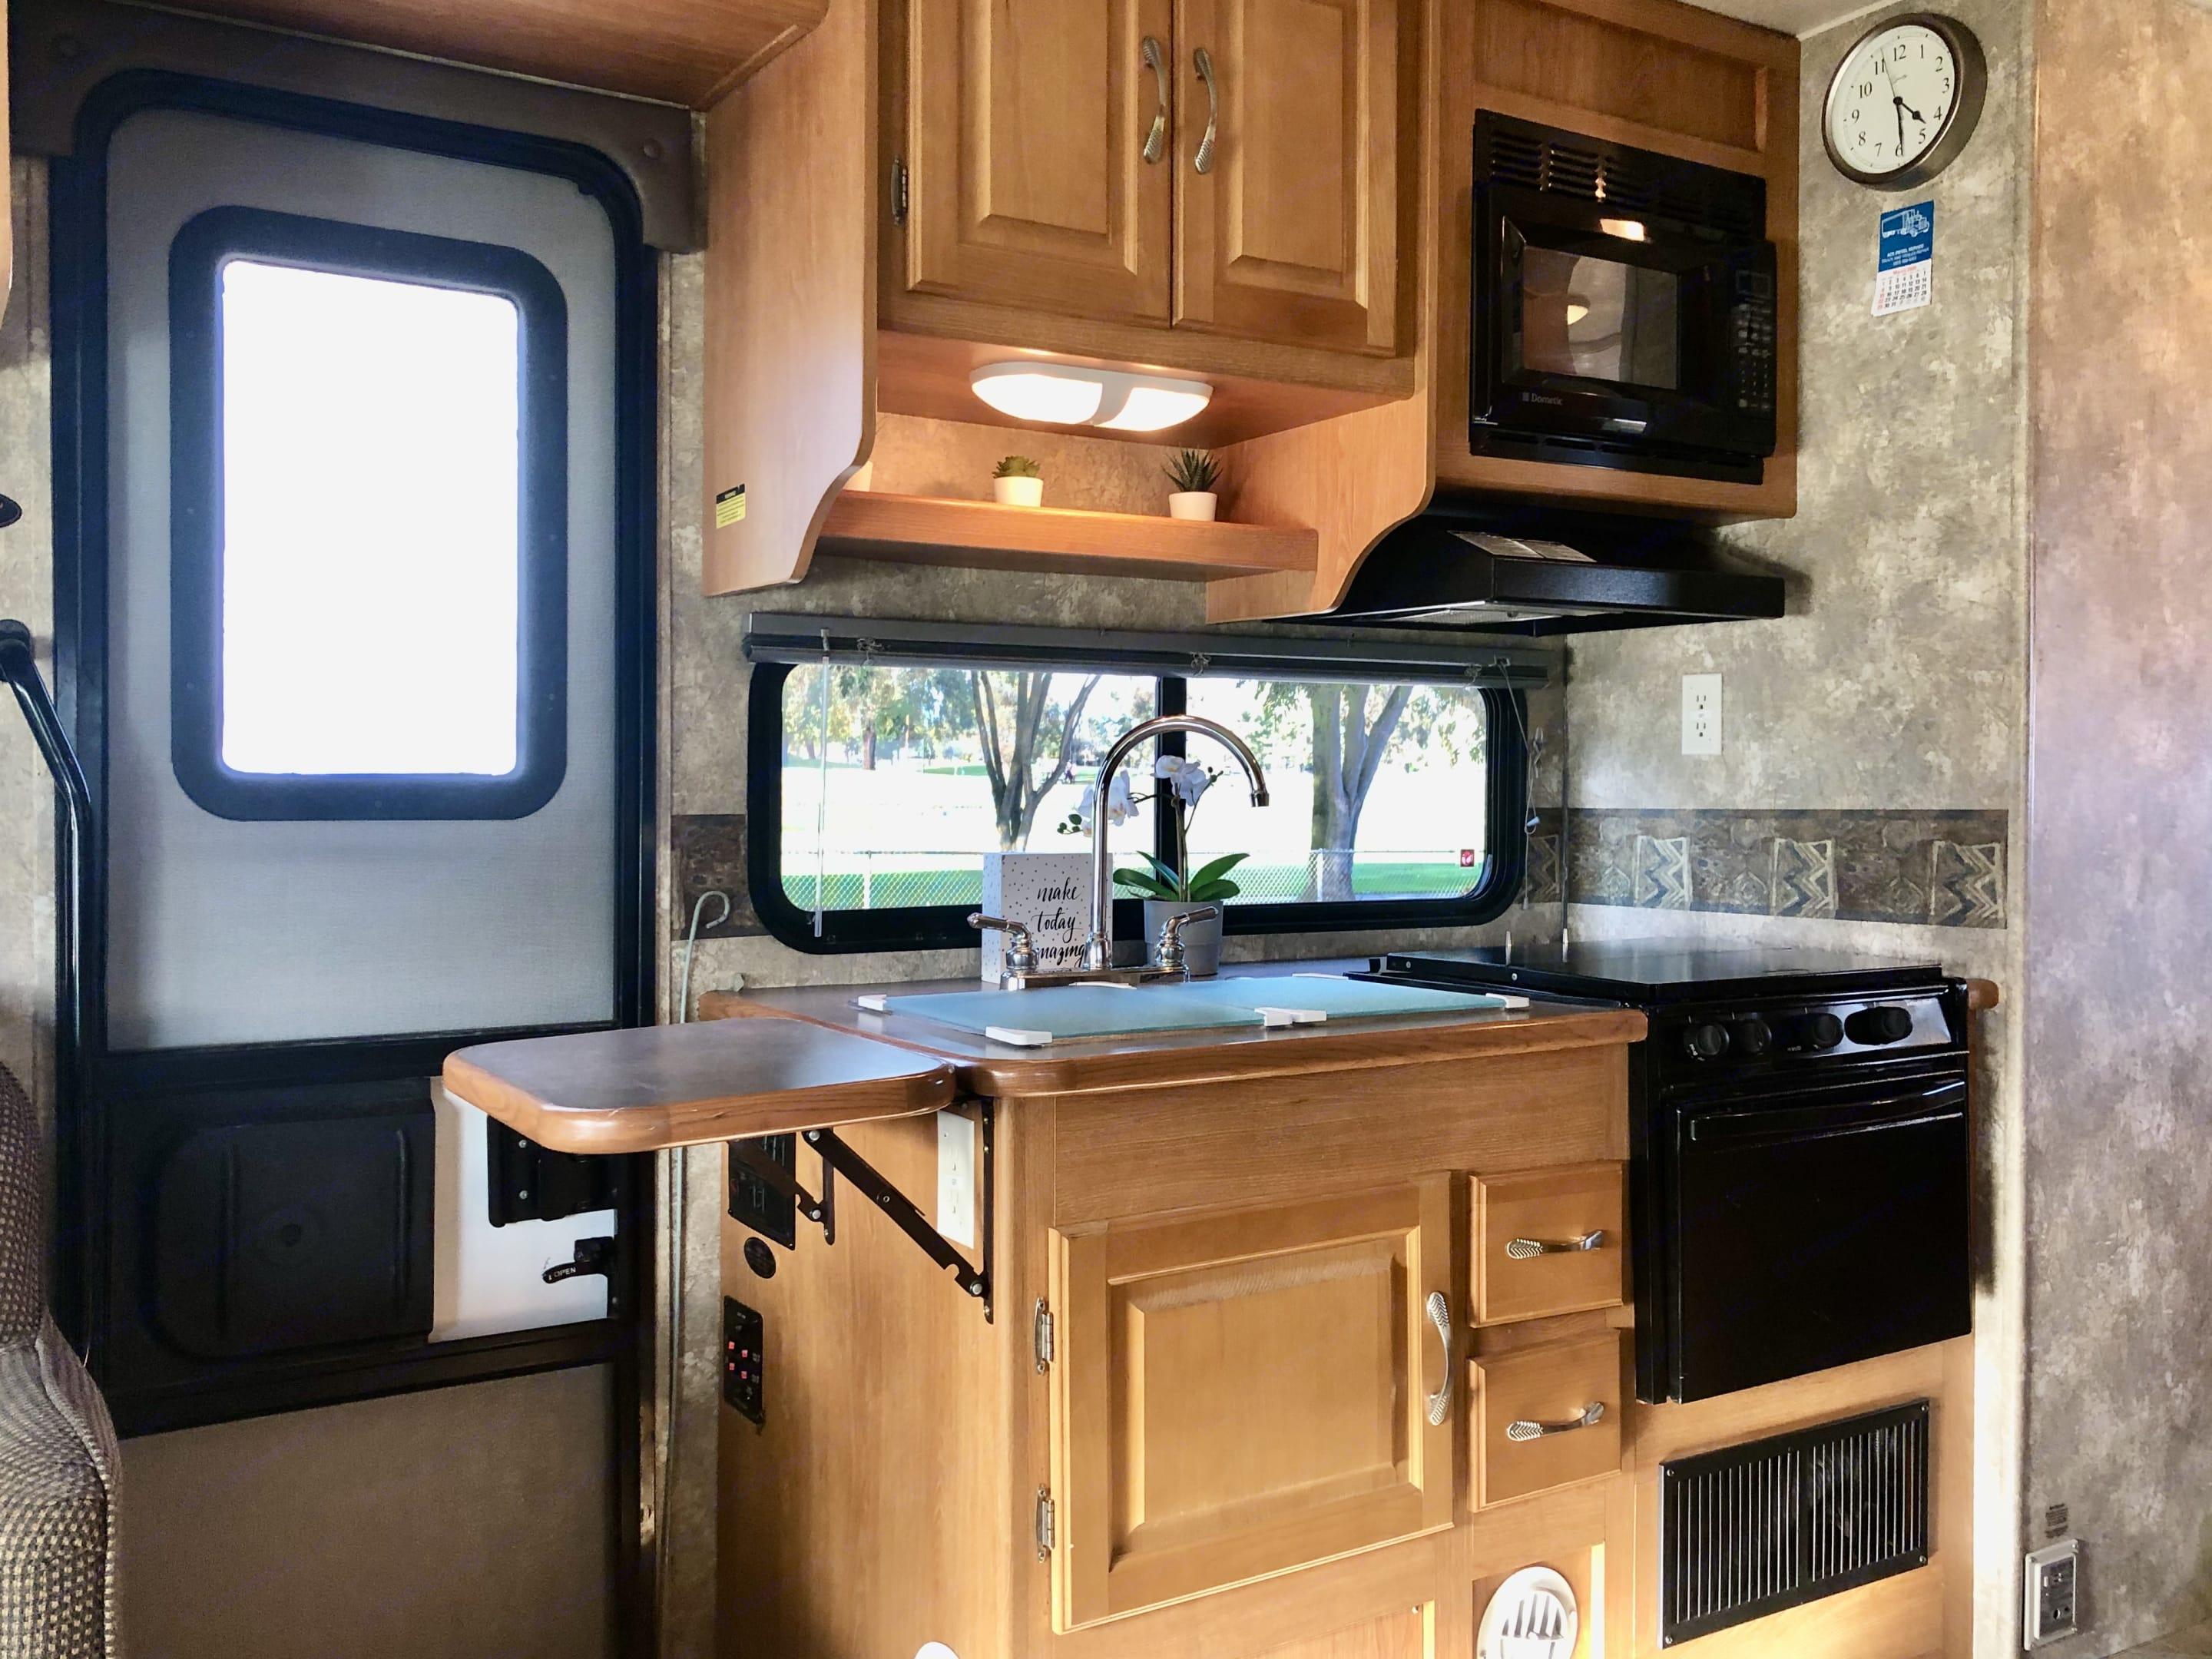 Extra work-space with counter extender, stove cover & glass sink-cover cutting boards  👍🏻. Coachmen Freelander 2007